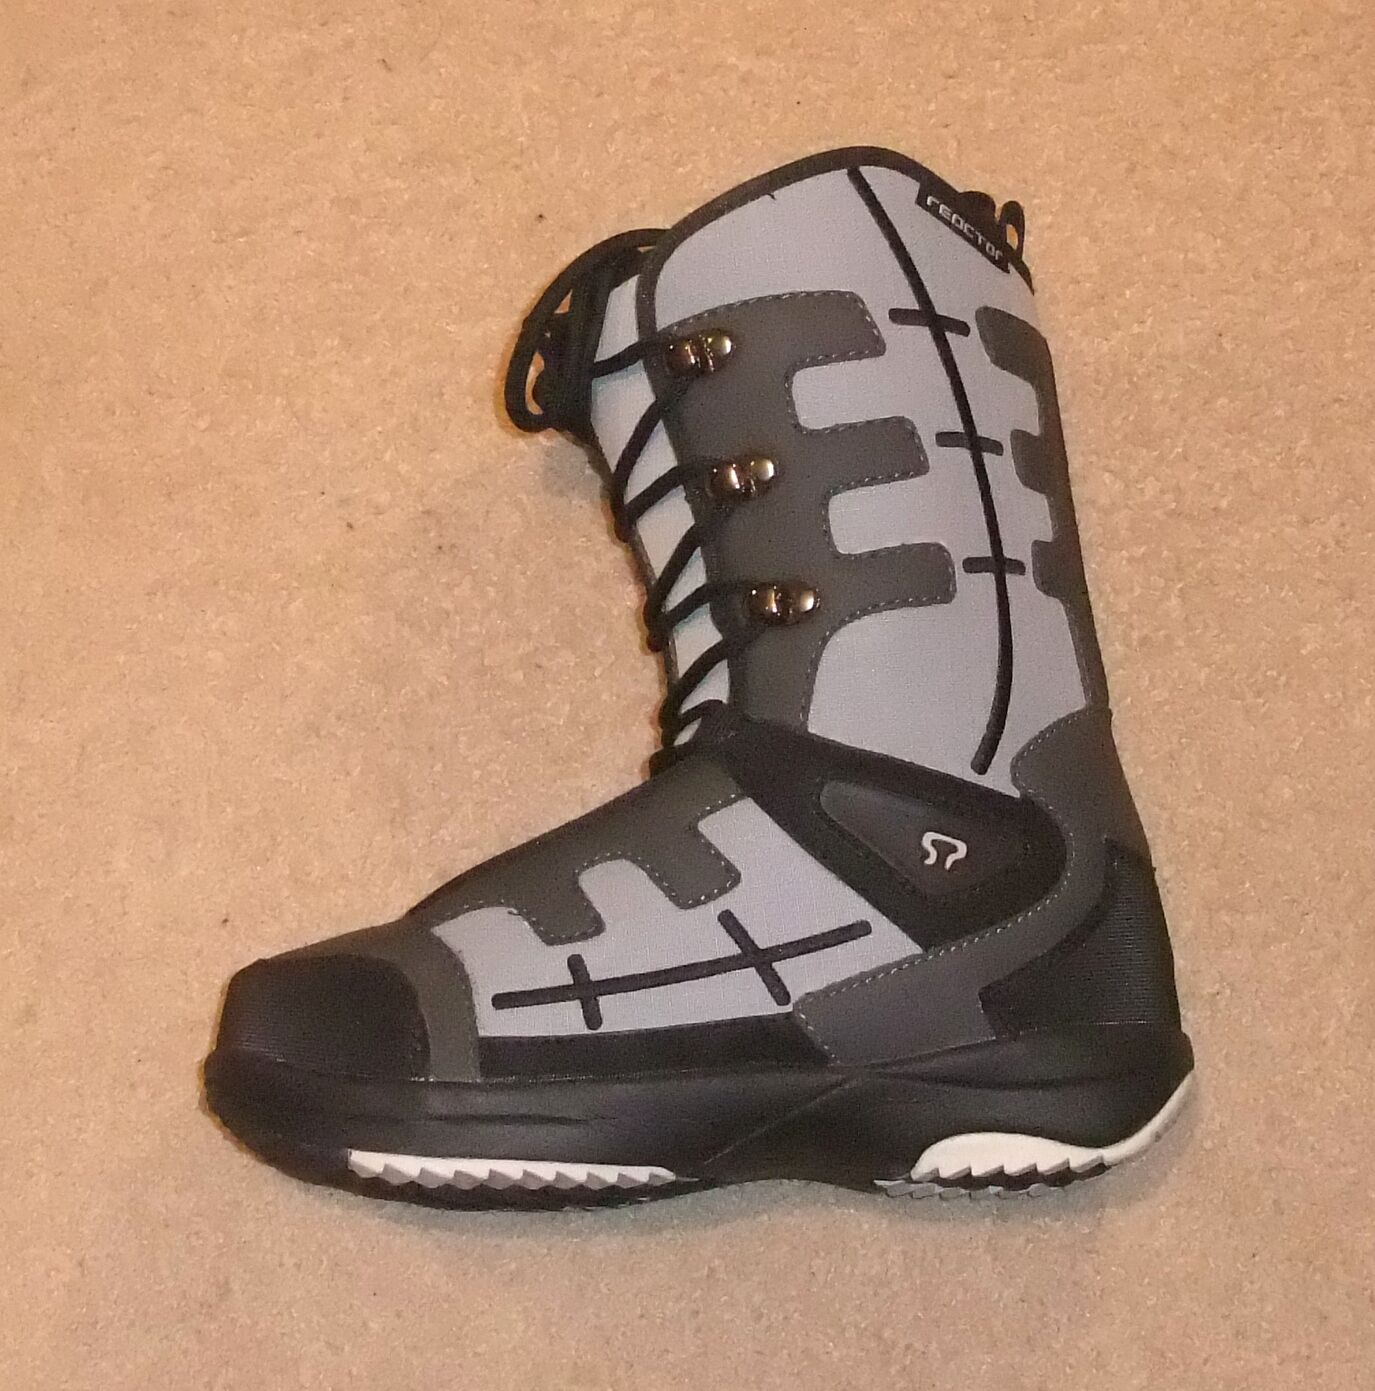 NEW  SOWN PRO REACTOR  SNOWBOARD Stiefel   UK 7